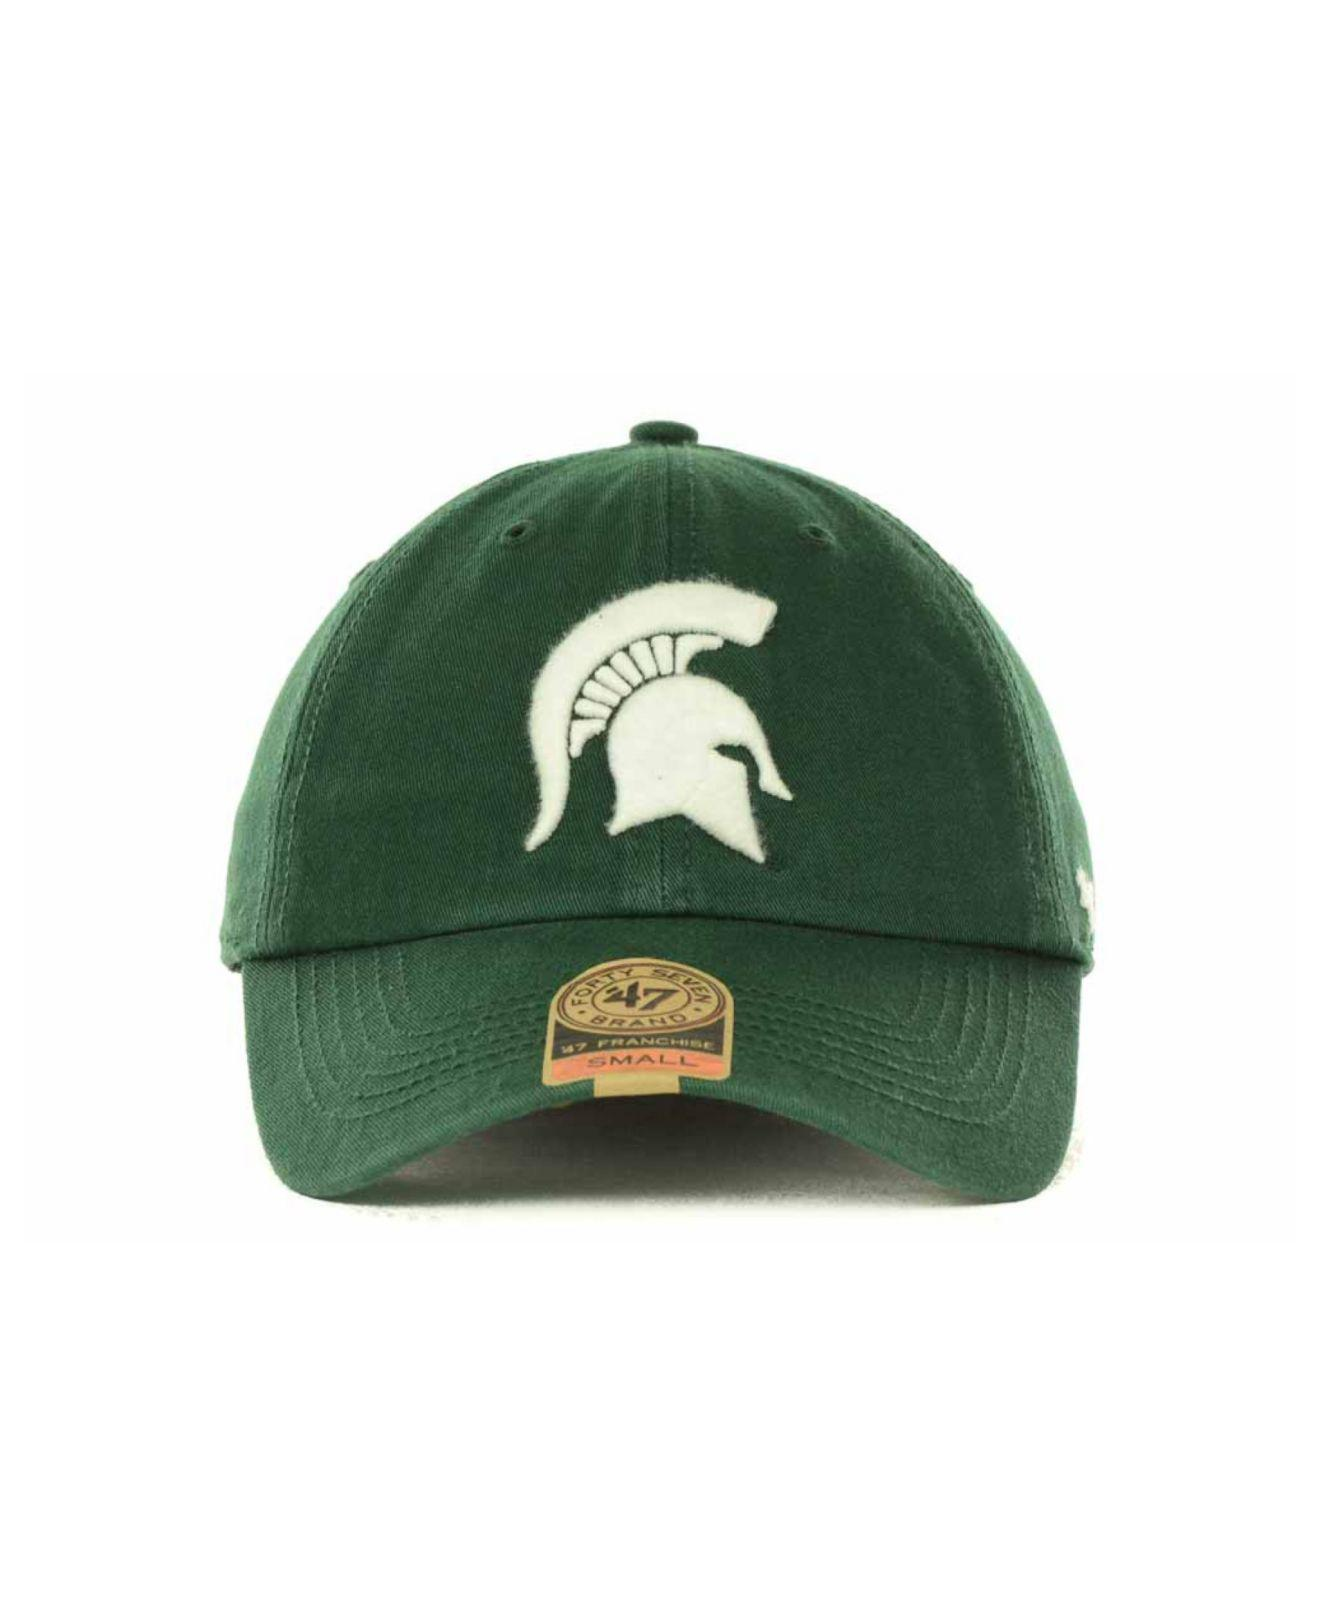 separation shoes 8745a 9551f ... cheap lyst 47 brand michigan state spartans franchise cap in green for  men eea76 75218